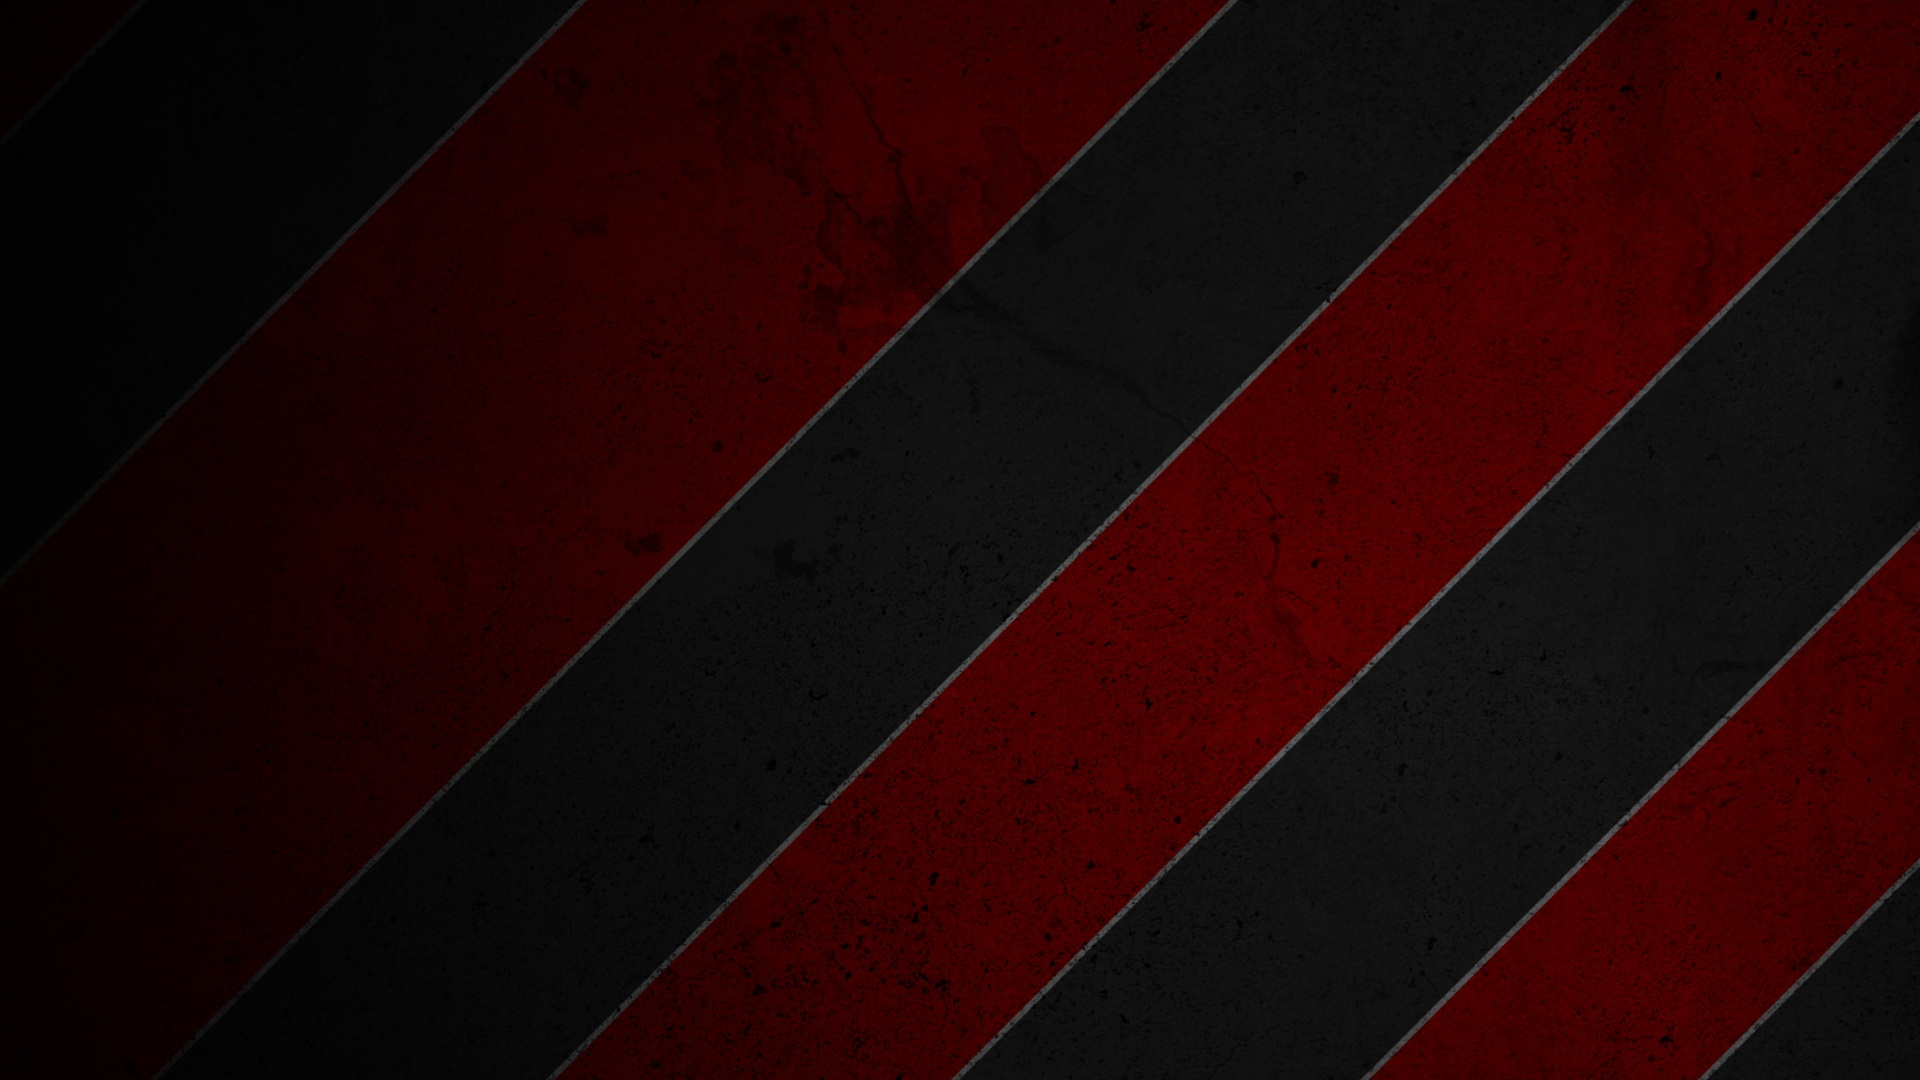 Collection of Black And Red Wallpapers on HDWallpapers 1920x1080